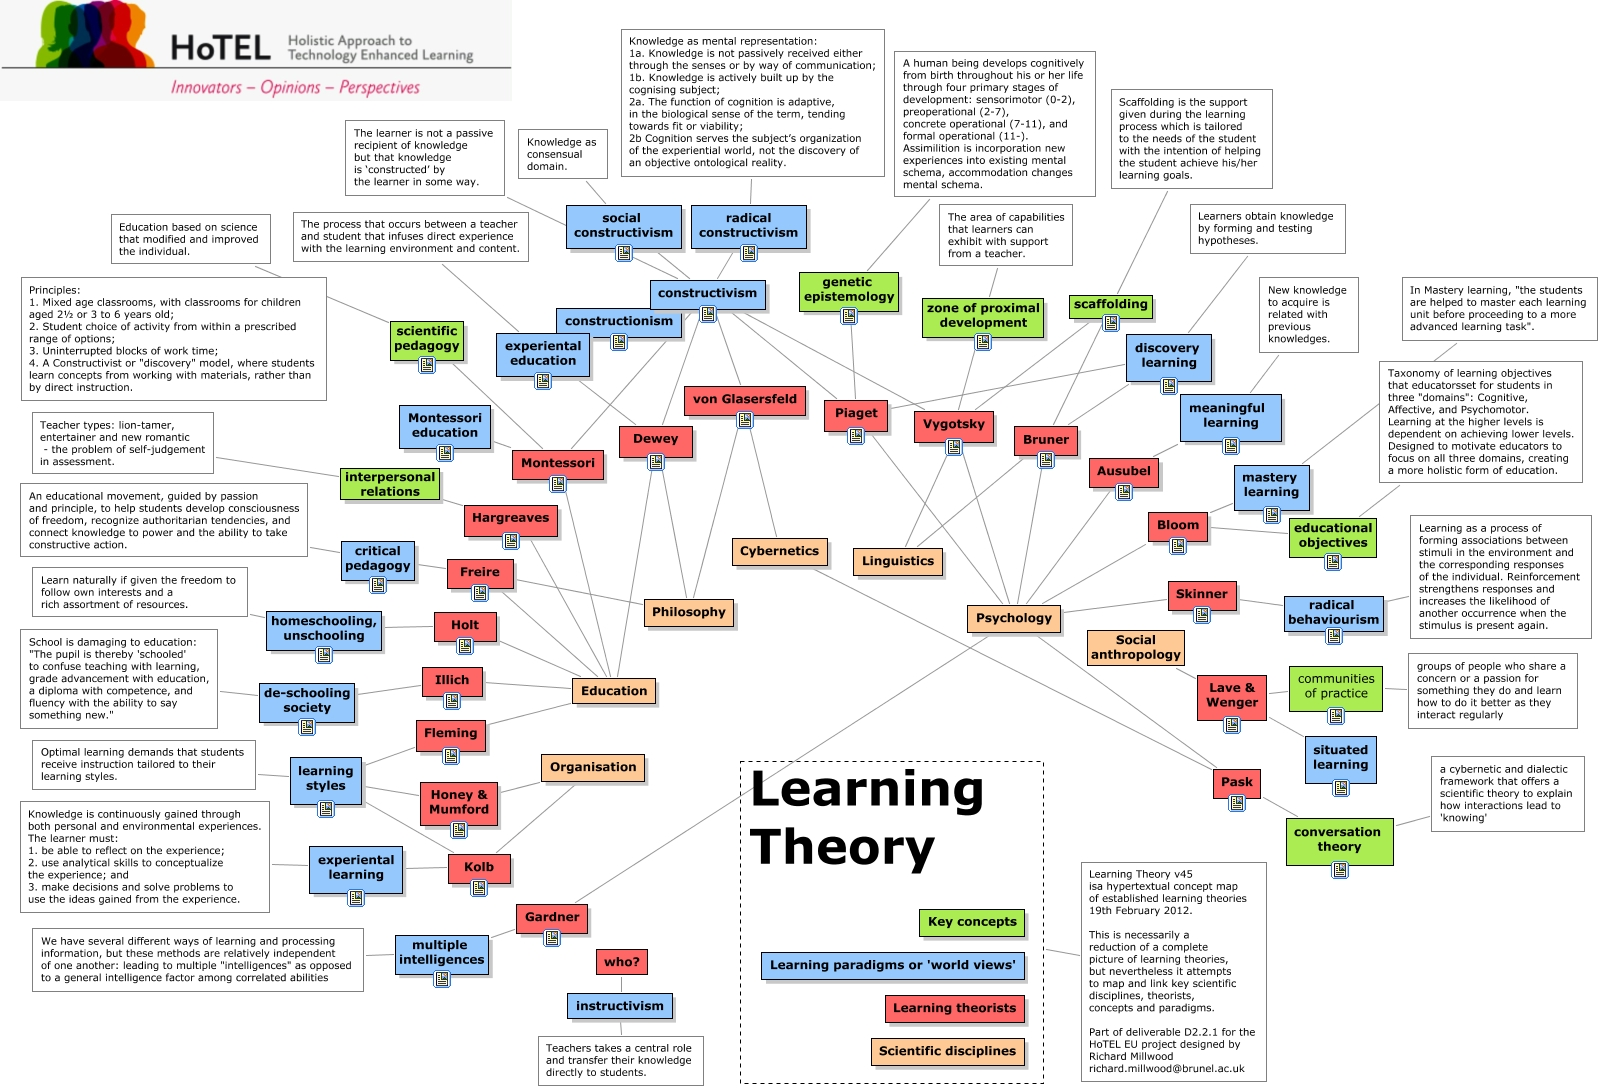 learning theory Links to learning theory sites animal trainer's introduction to operant & classical conditioning - stacy braslau-schneck this page attempts to explain operant conditioning, and promote the use of positive reinforcement and negative punishment in animal training.